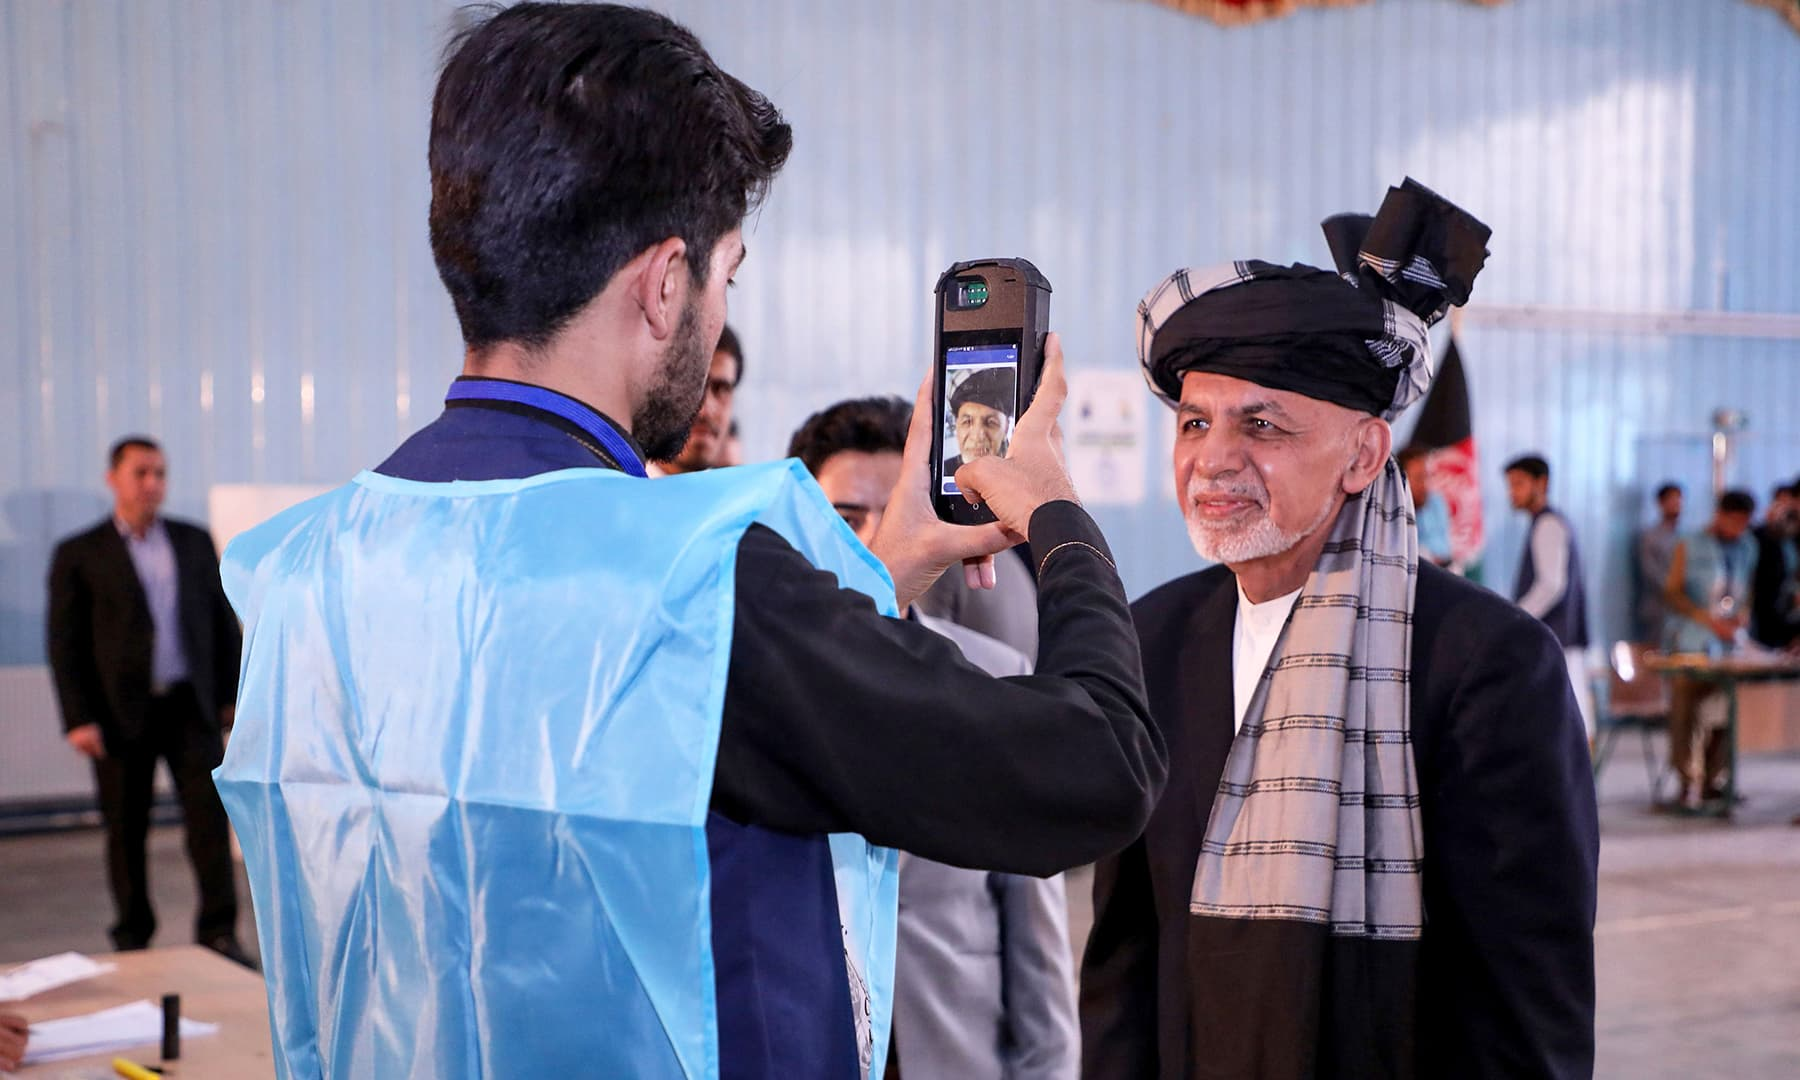 In this handout photograph taken and released by Press Office of President of Afghanistan, an Independent Election Commission (IEC) official scans the face of Afghan President and candidate Ashraf Ghani with a biometric device at a polling station in Kabul. — AFP